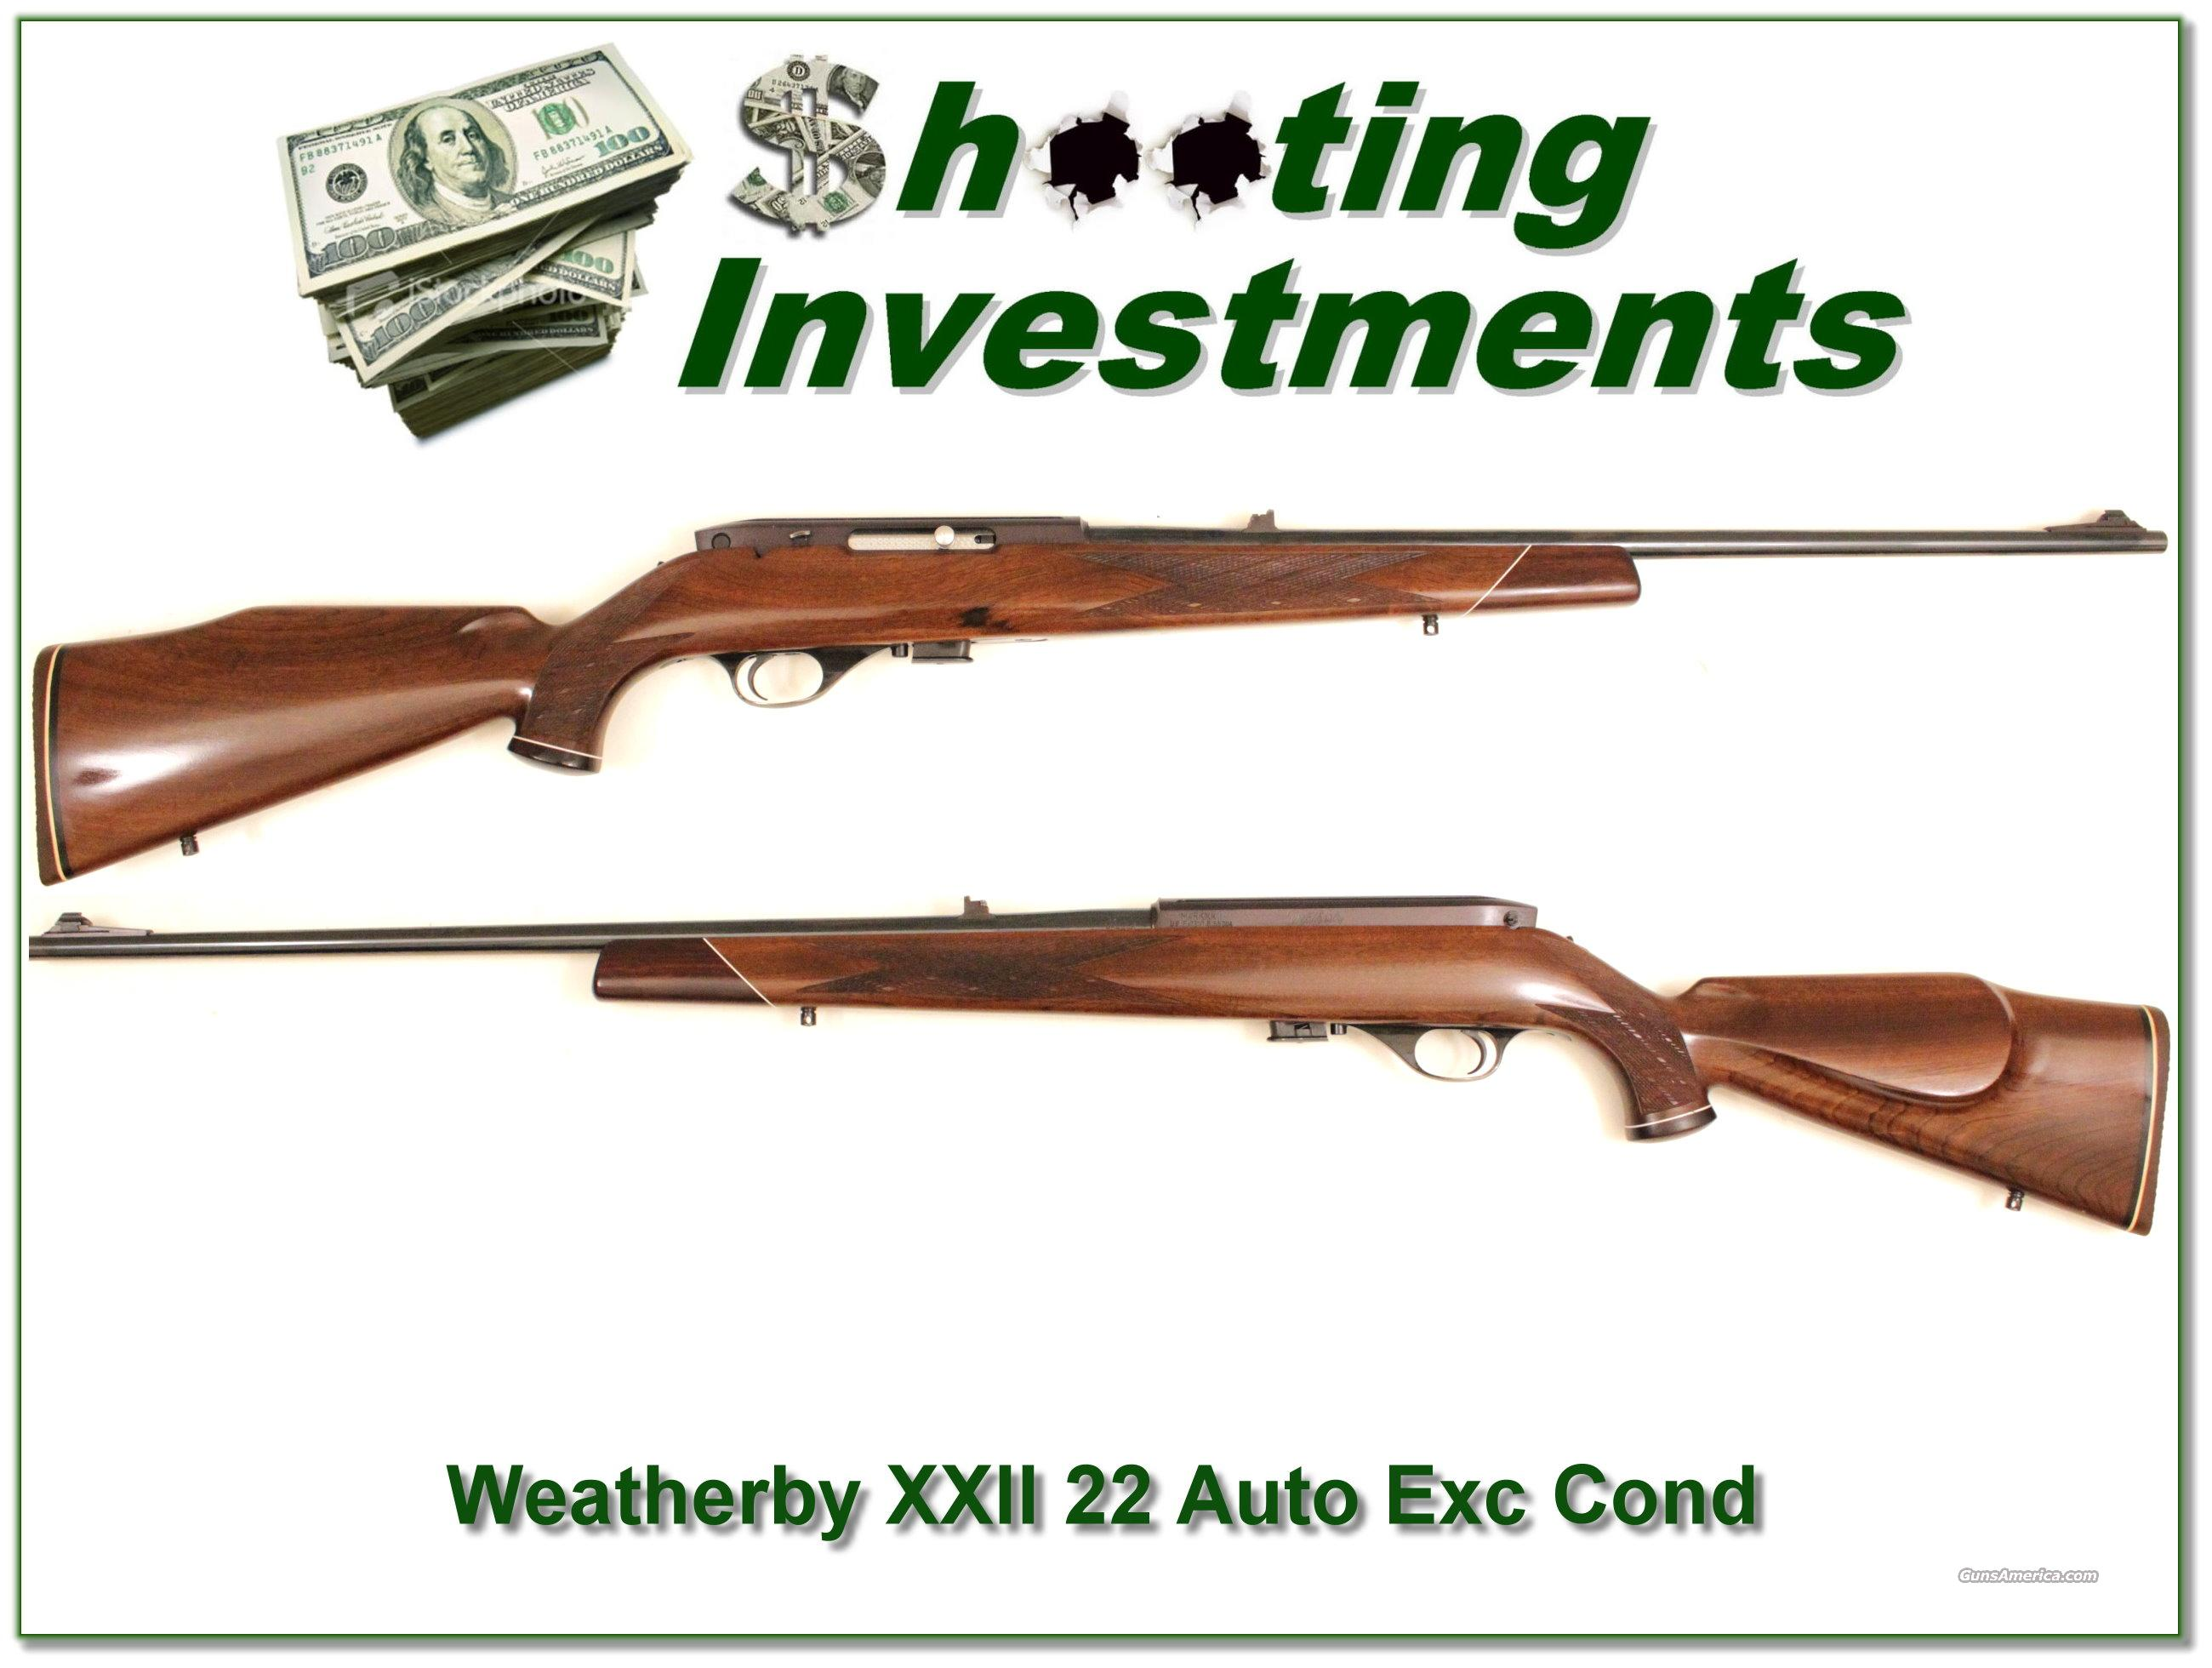 Weatherby XXII semi auto EXC Cond!  Guns > Rifles > Weatherby Rifles > Sporting